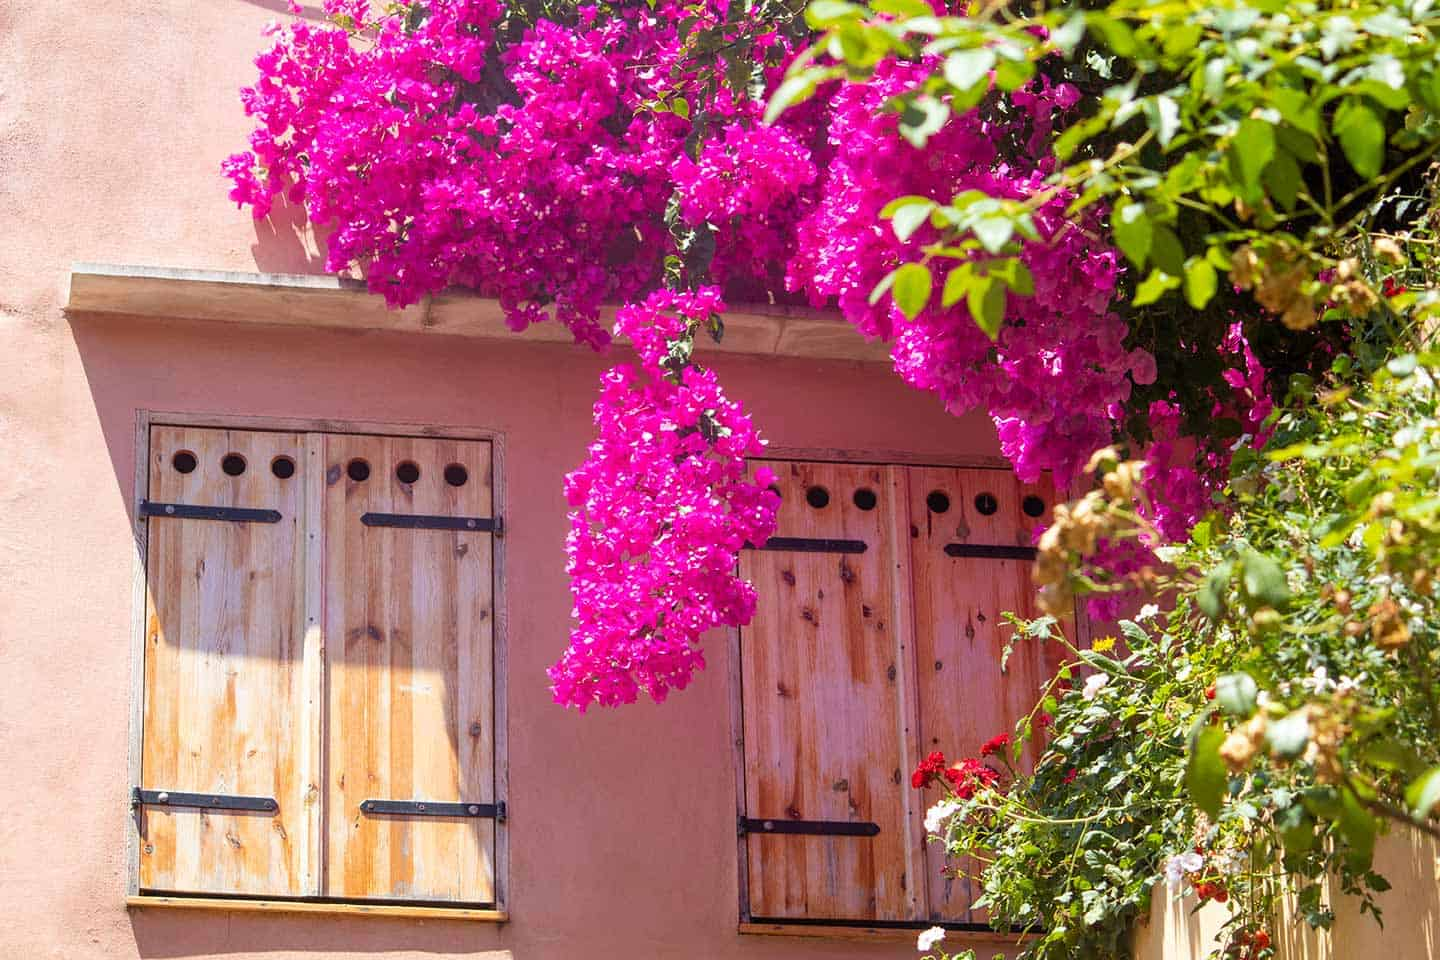 Image of a window surrounded by bougainvillea flowers Chania Crete Greece